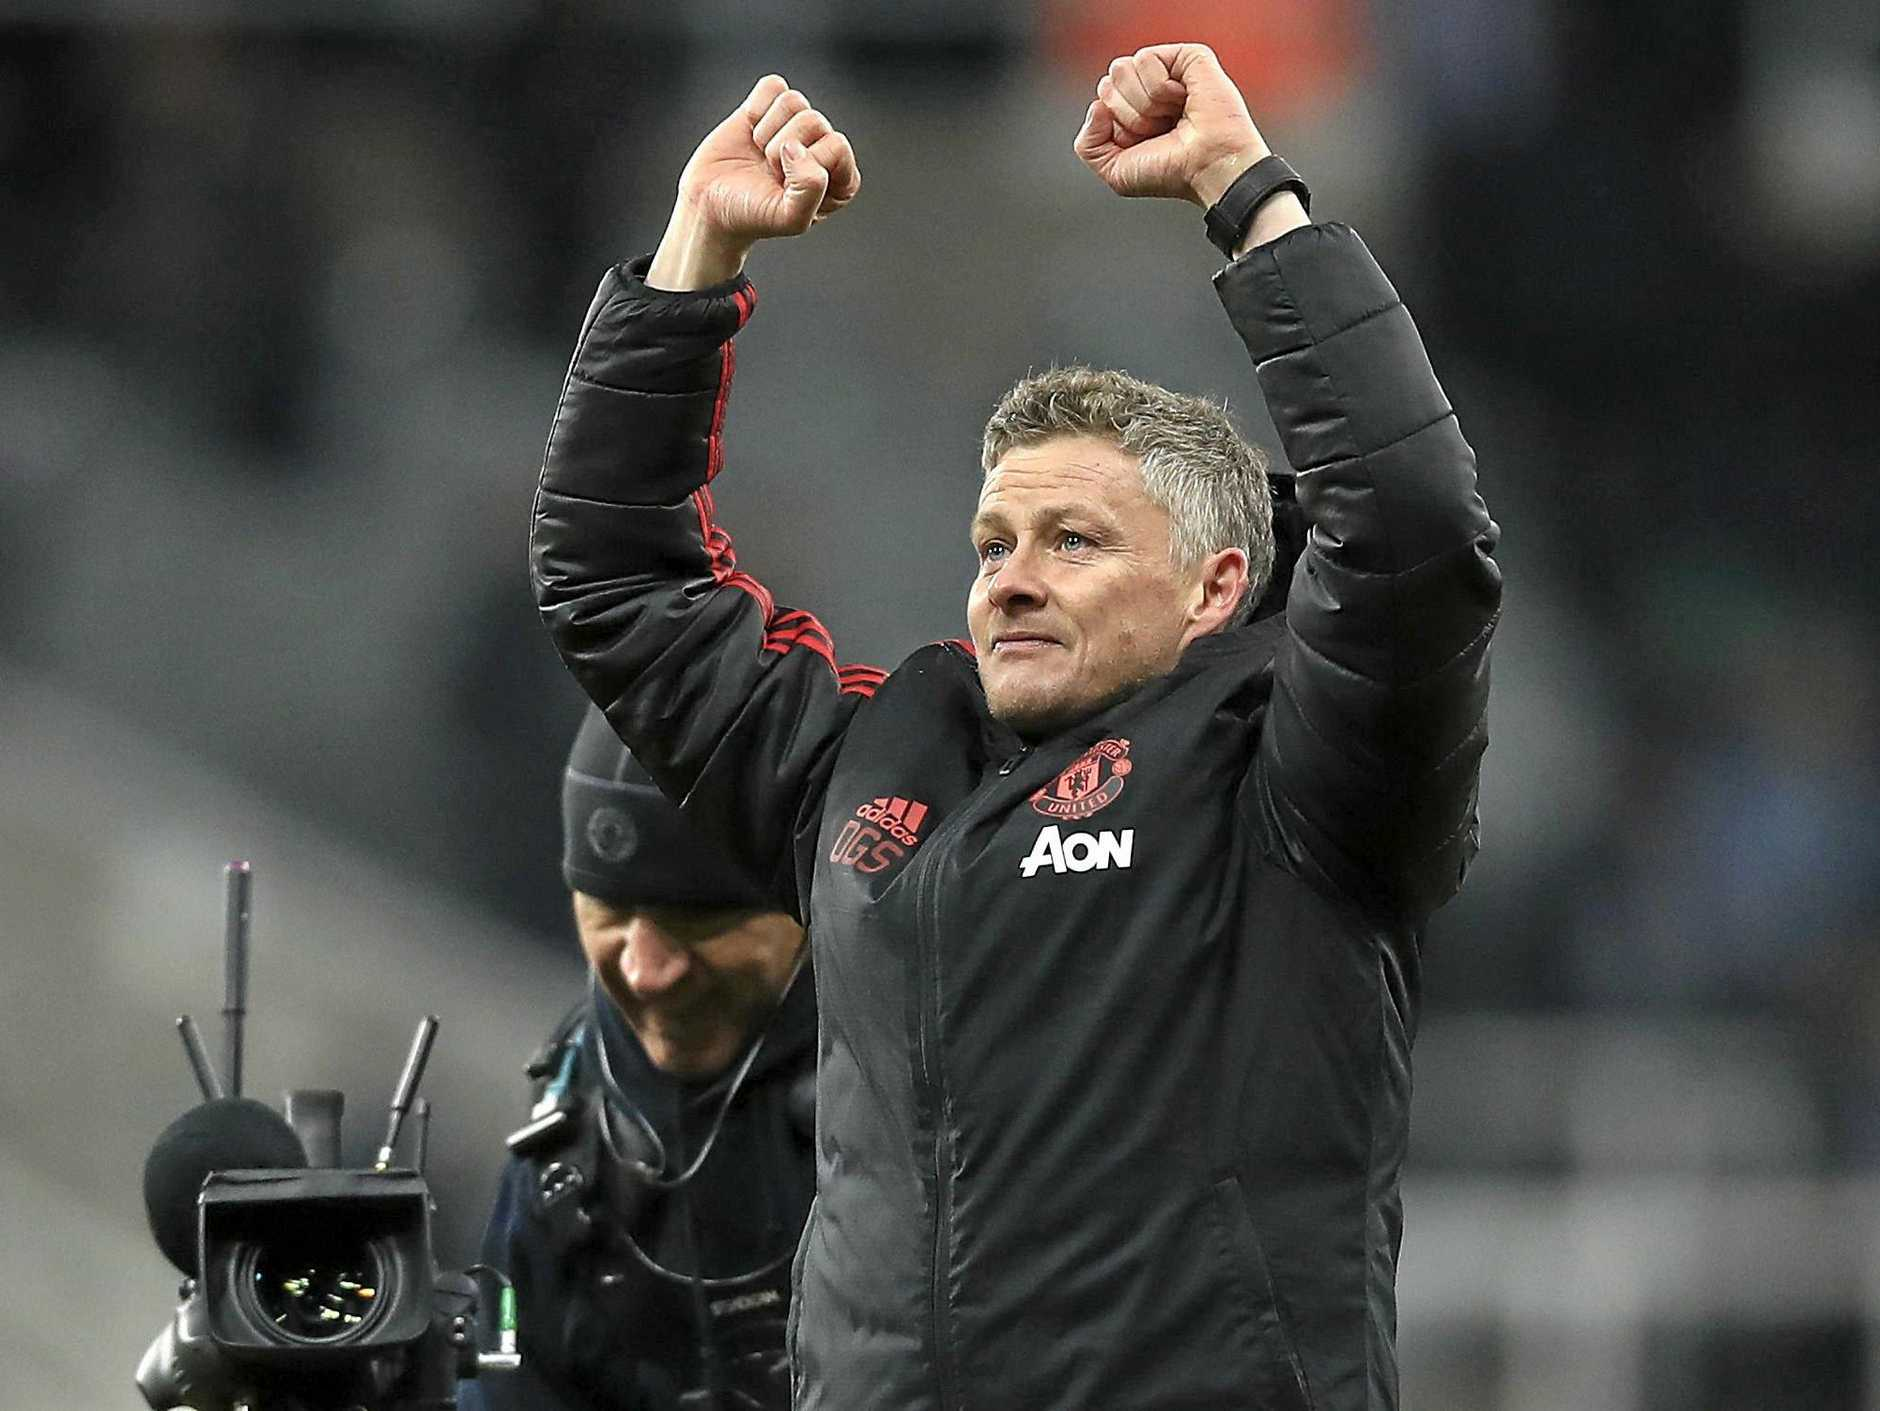 Victorious Manchester United interim manager Ole Gunnar Solskjaer reacts after the final whistle in the clash with Newcastle at St James' Park. Picture: Owen Humphreys/AP